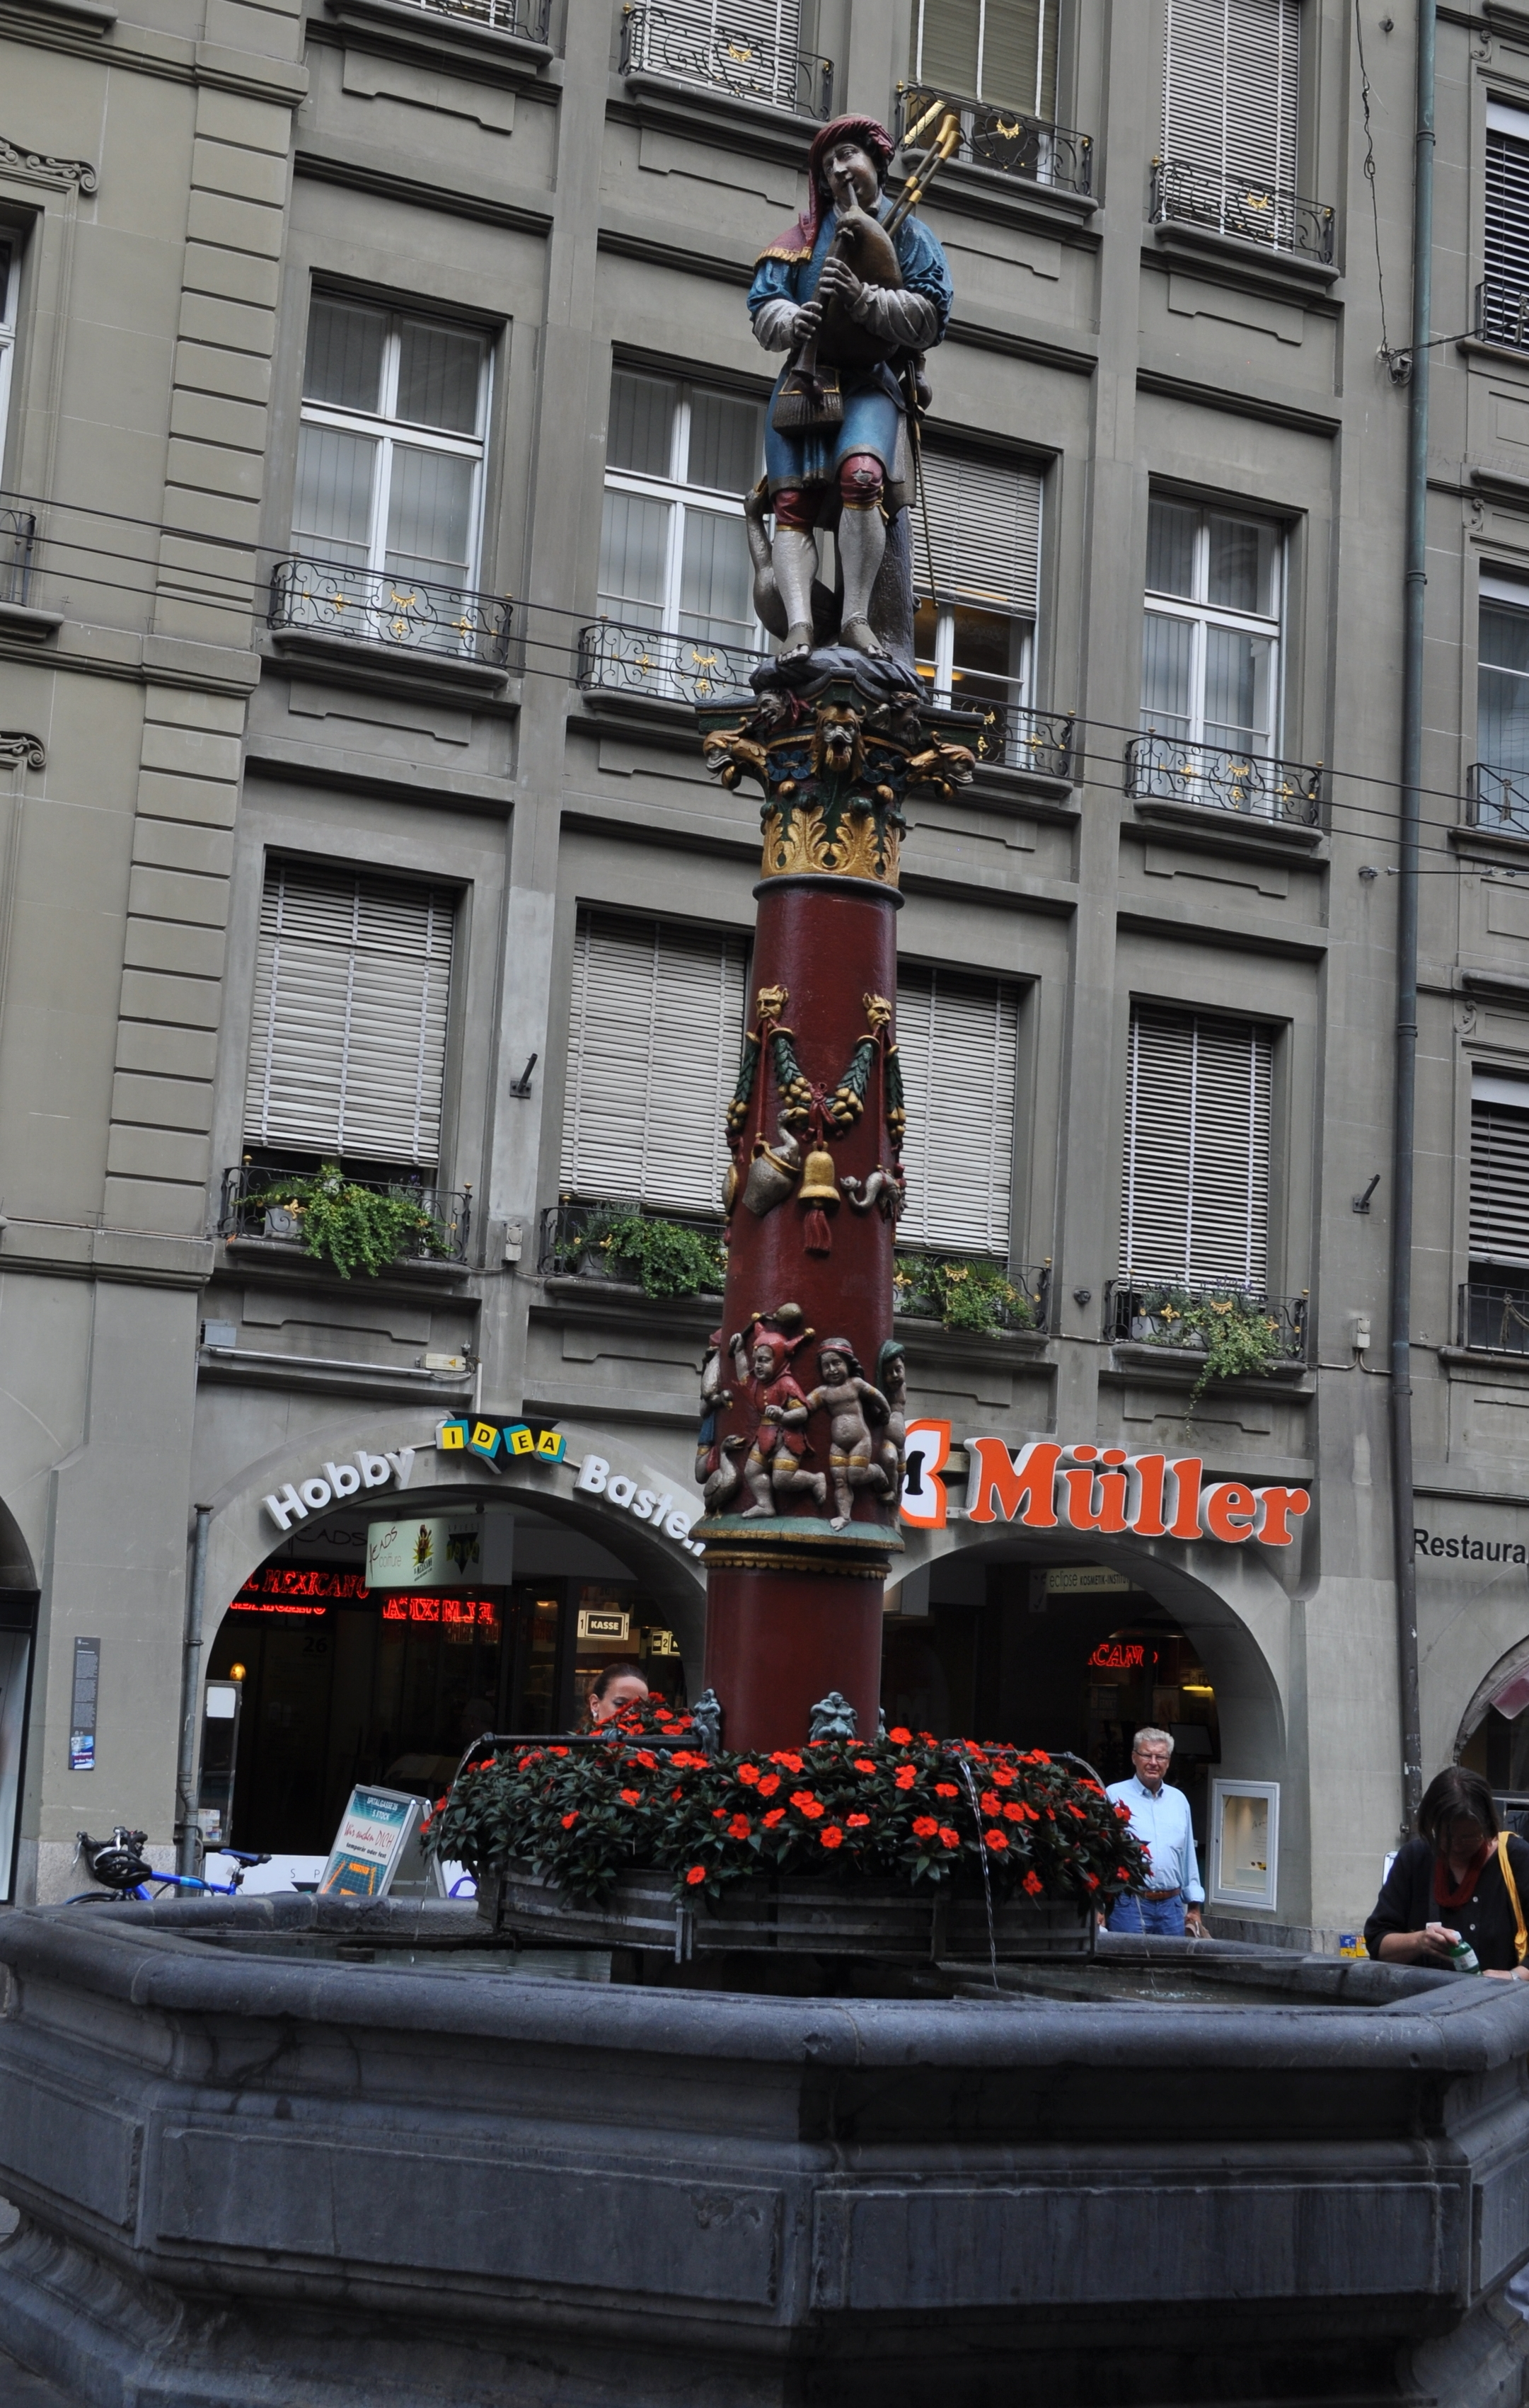 In Spitalgasse Street you can find the bagpiper's fountain. (Pfeiferbrunnen). Photo: Pamy Rojas